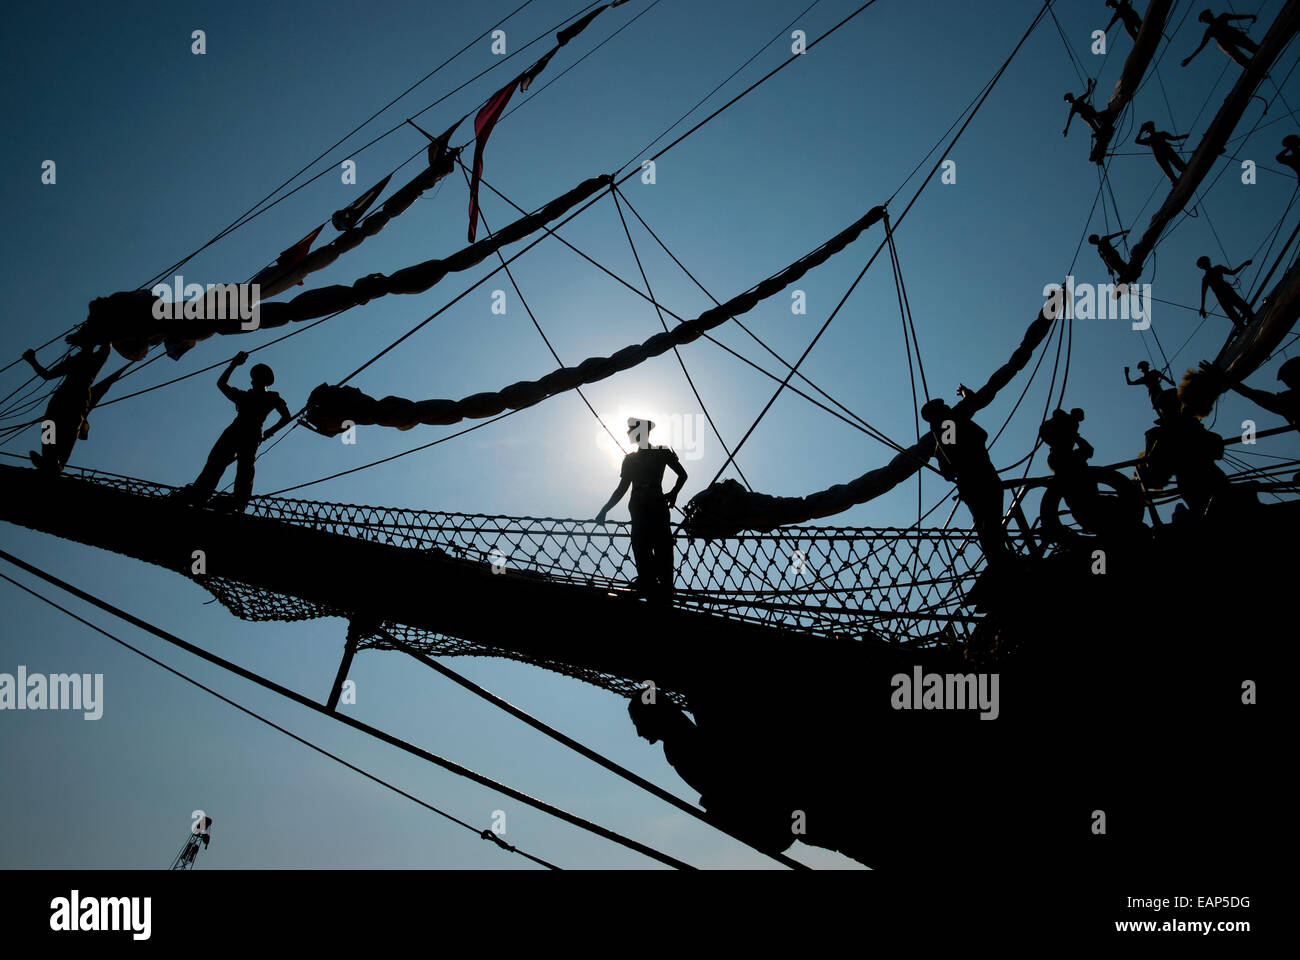 Indonesian navy cadets perform parade roll before the last sail of Dewaruci tall ship in 2012. Stock Photo